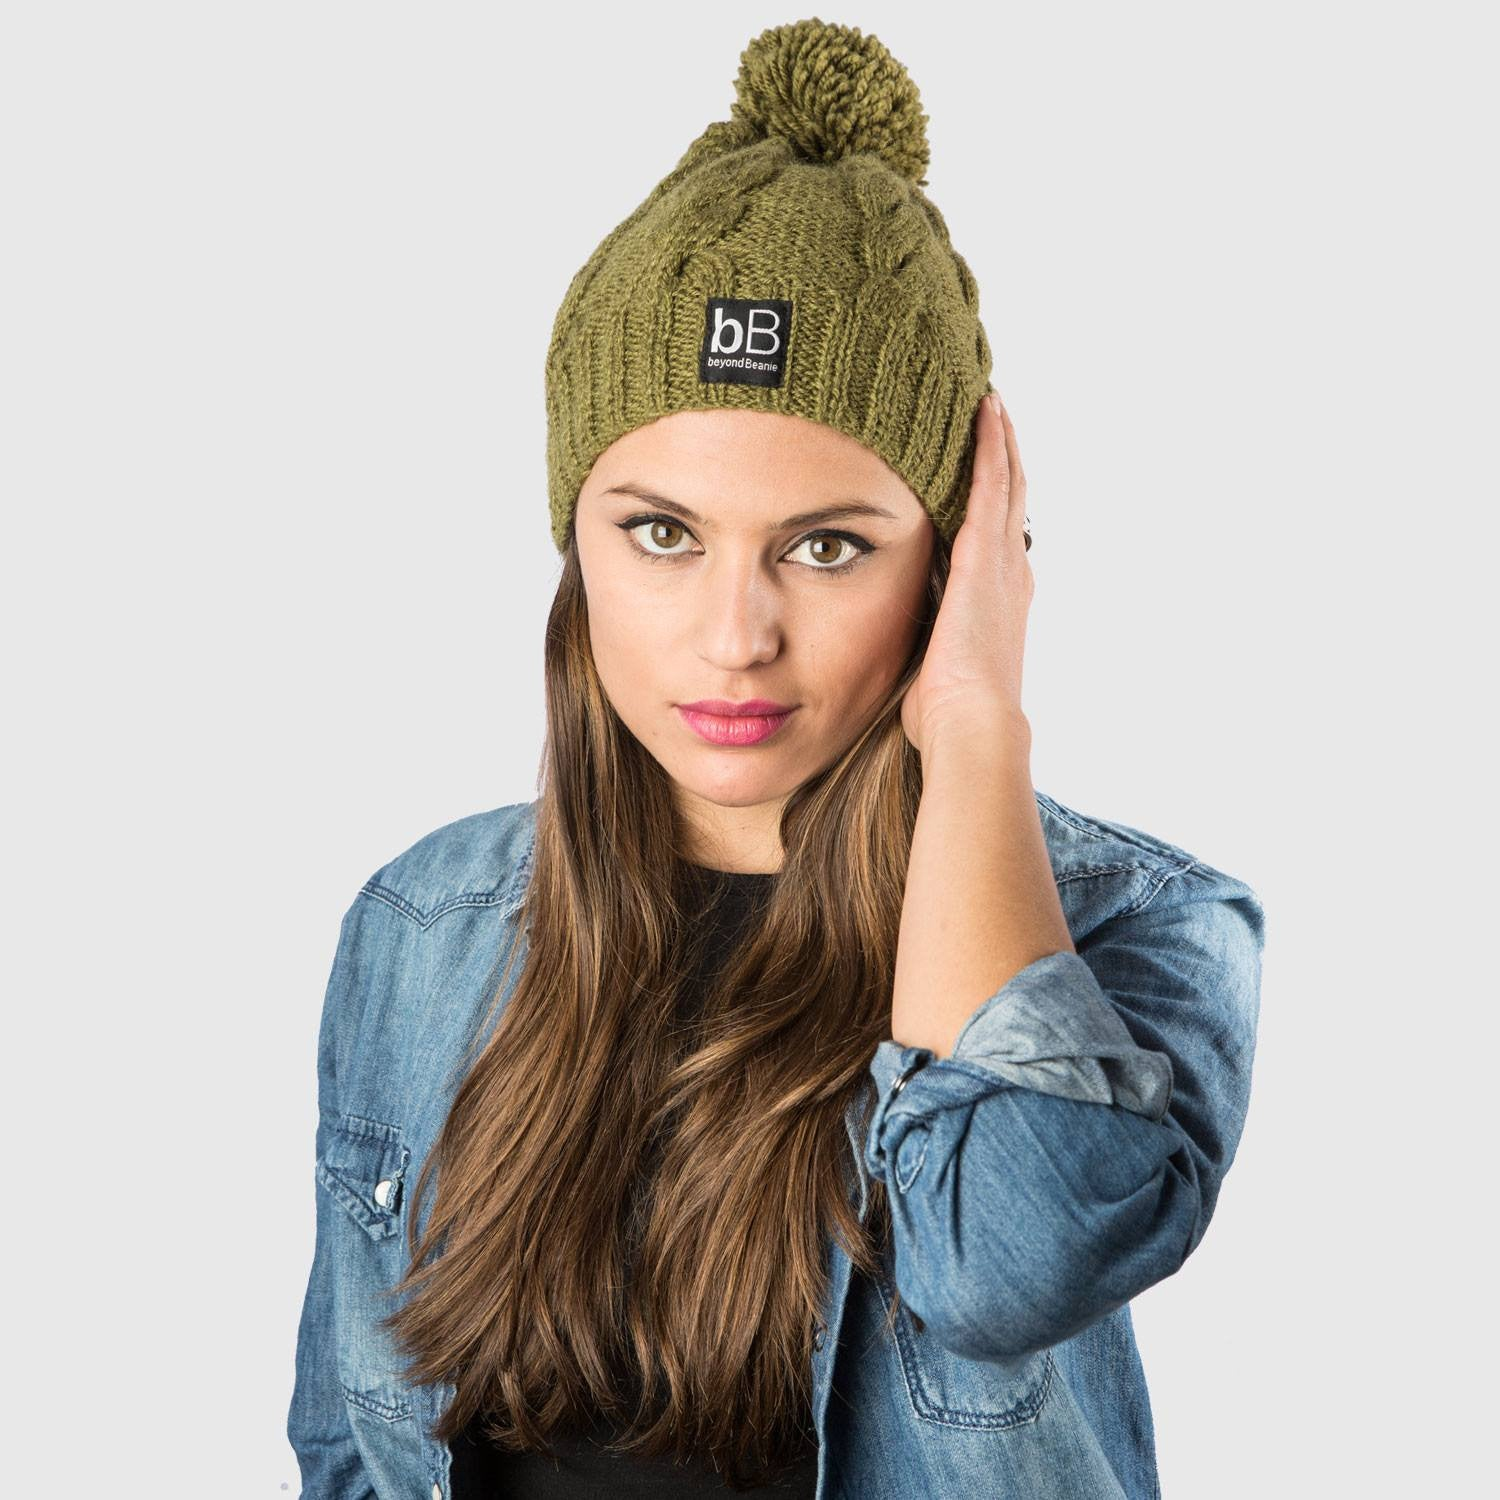 8ee46f2f7f3 Green Cosmos  Handmade Beanie Crafted with Purpose - beyondBeanie